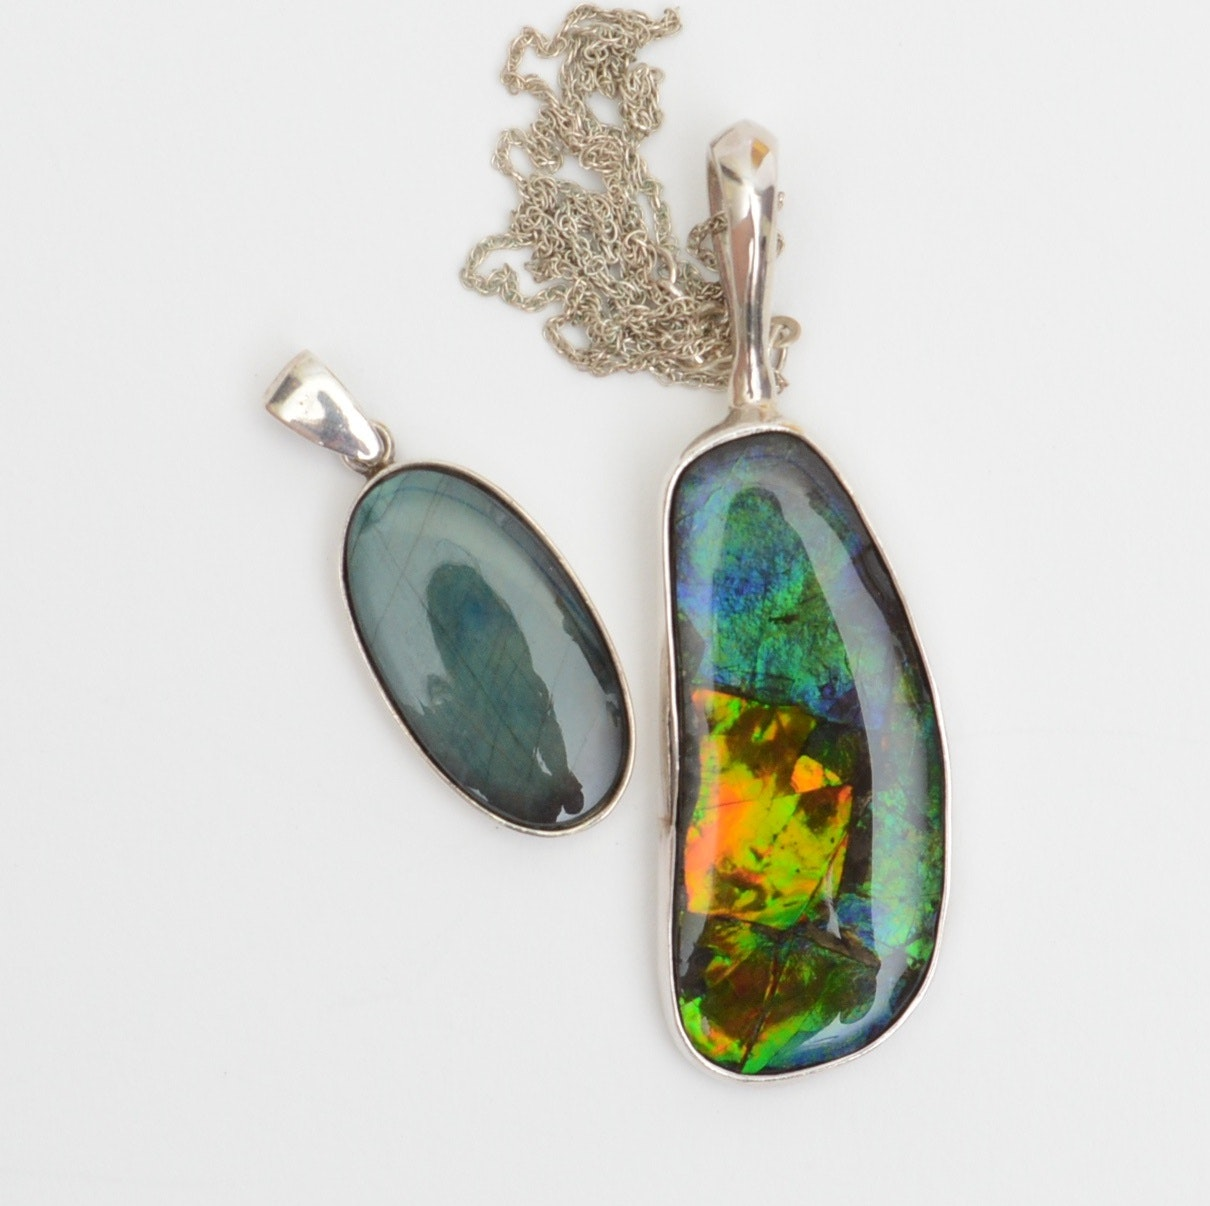 Sterling Silver Pendants with Ammolite and Labradorite